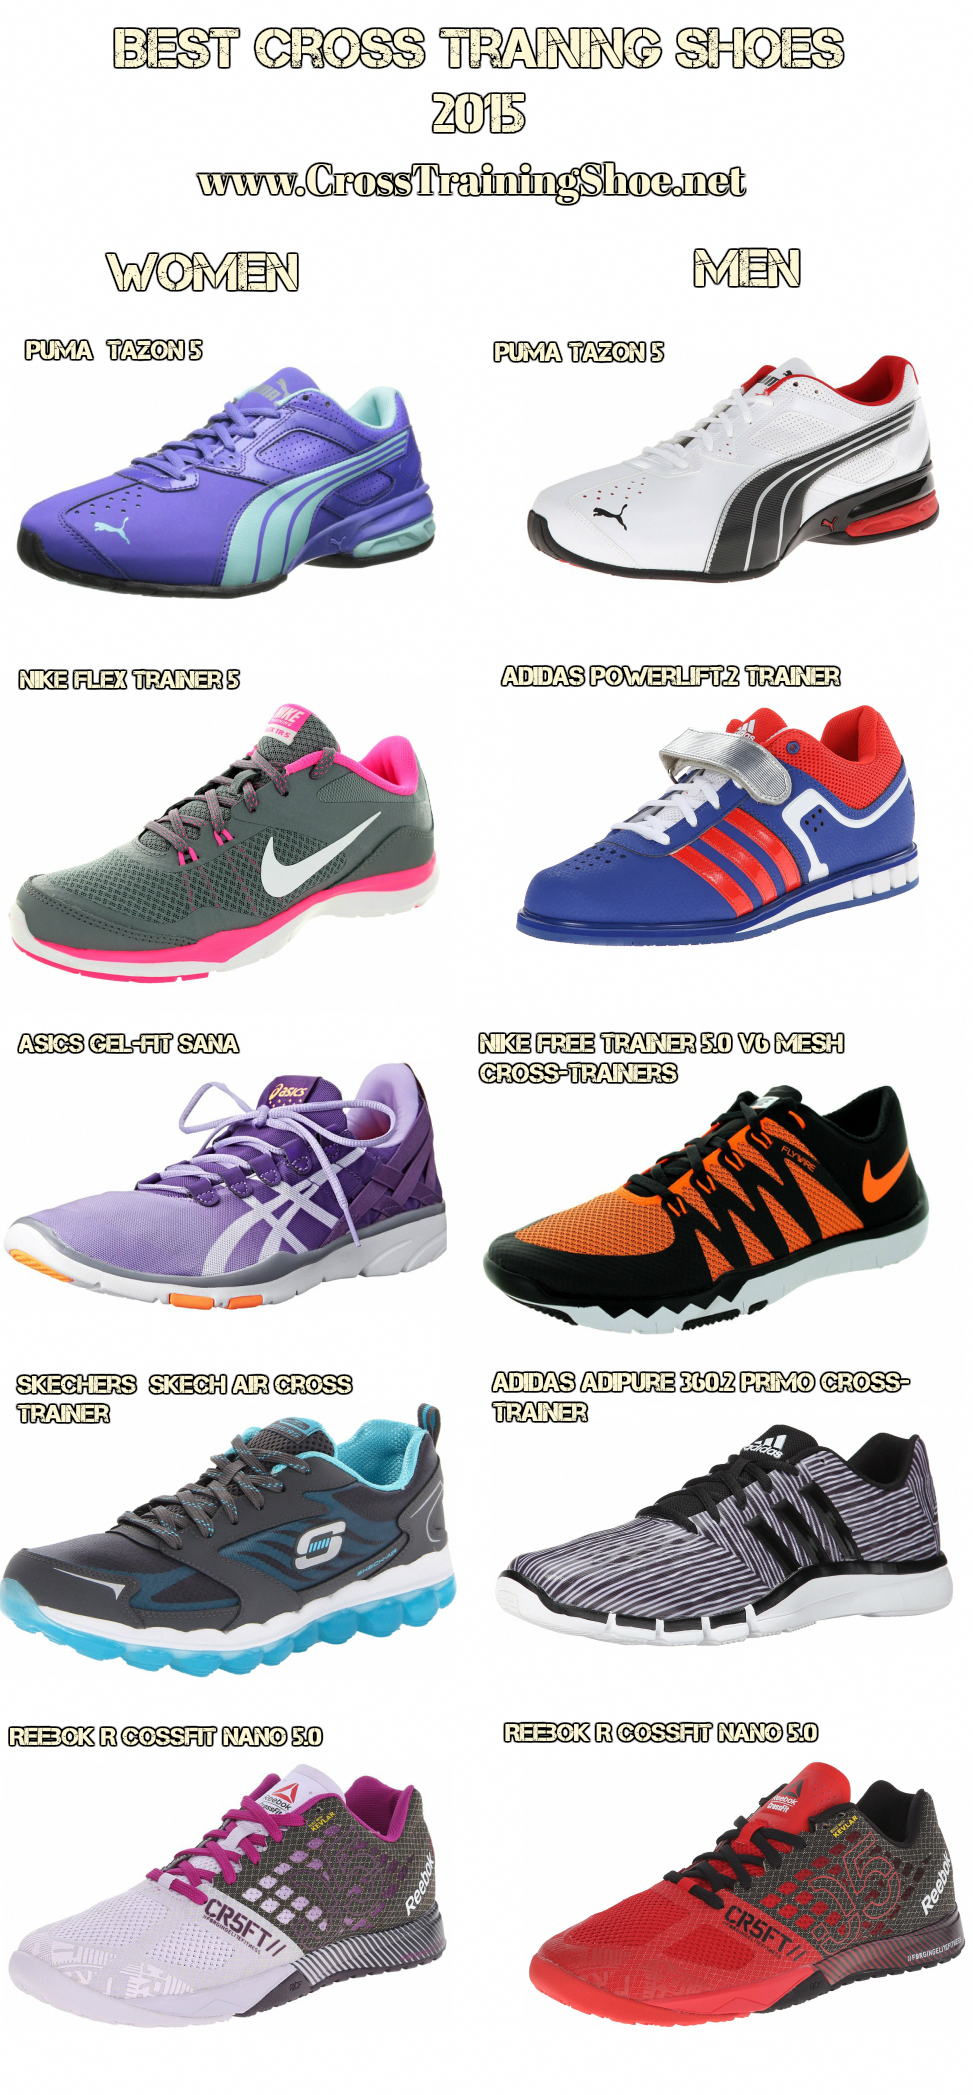 Best cross training (crossfit) shoes for men and women in 2015   CrossfitIdeas f910190fd540